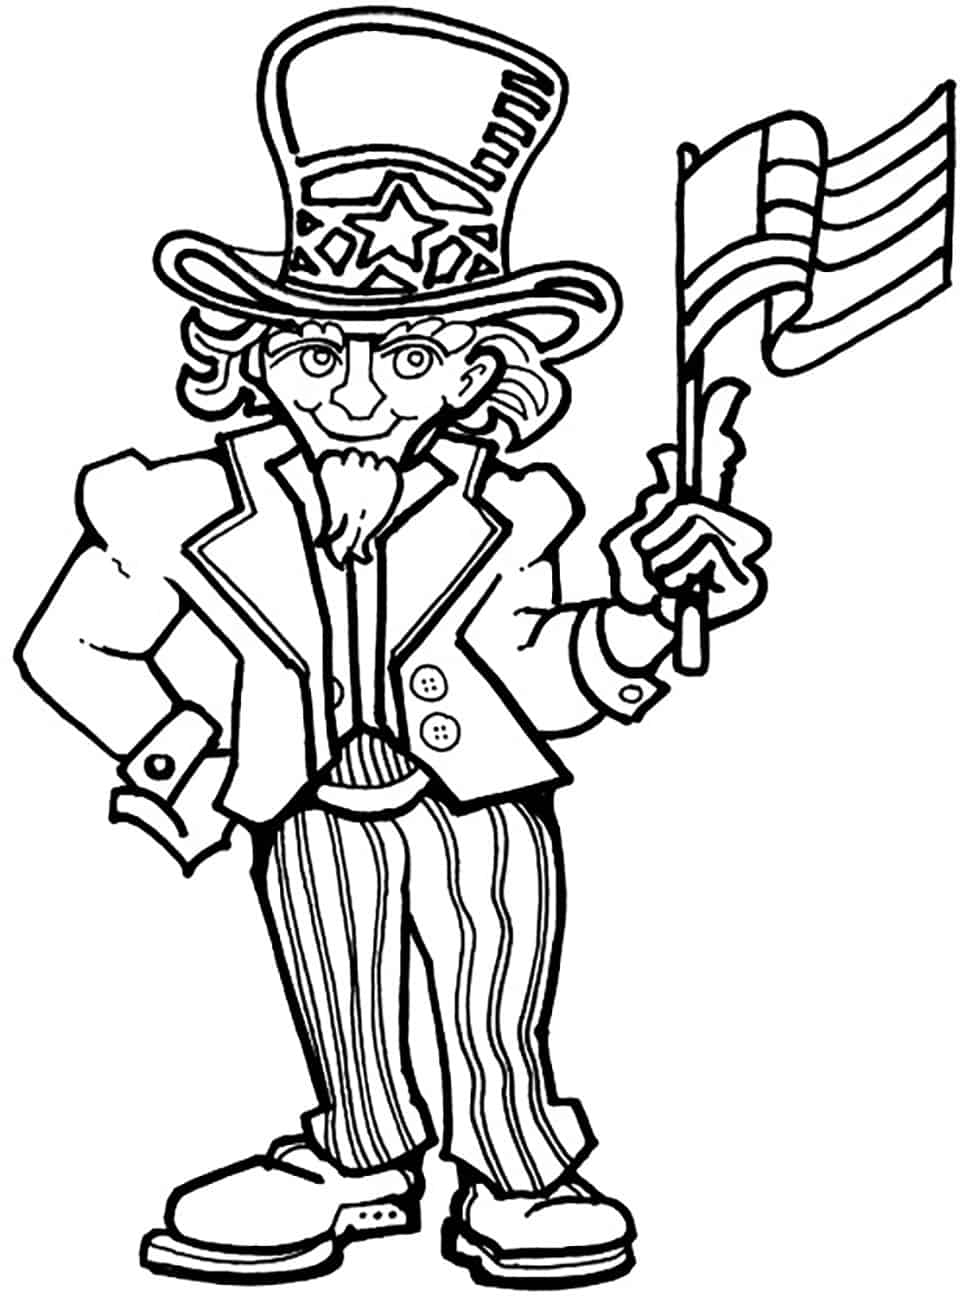 Free coloring pages for july 4th - 4th Of July Uncle Sam